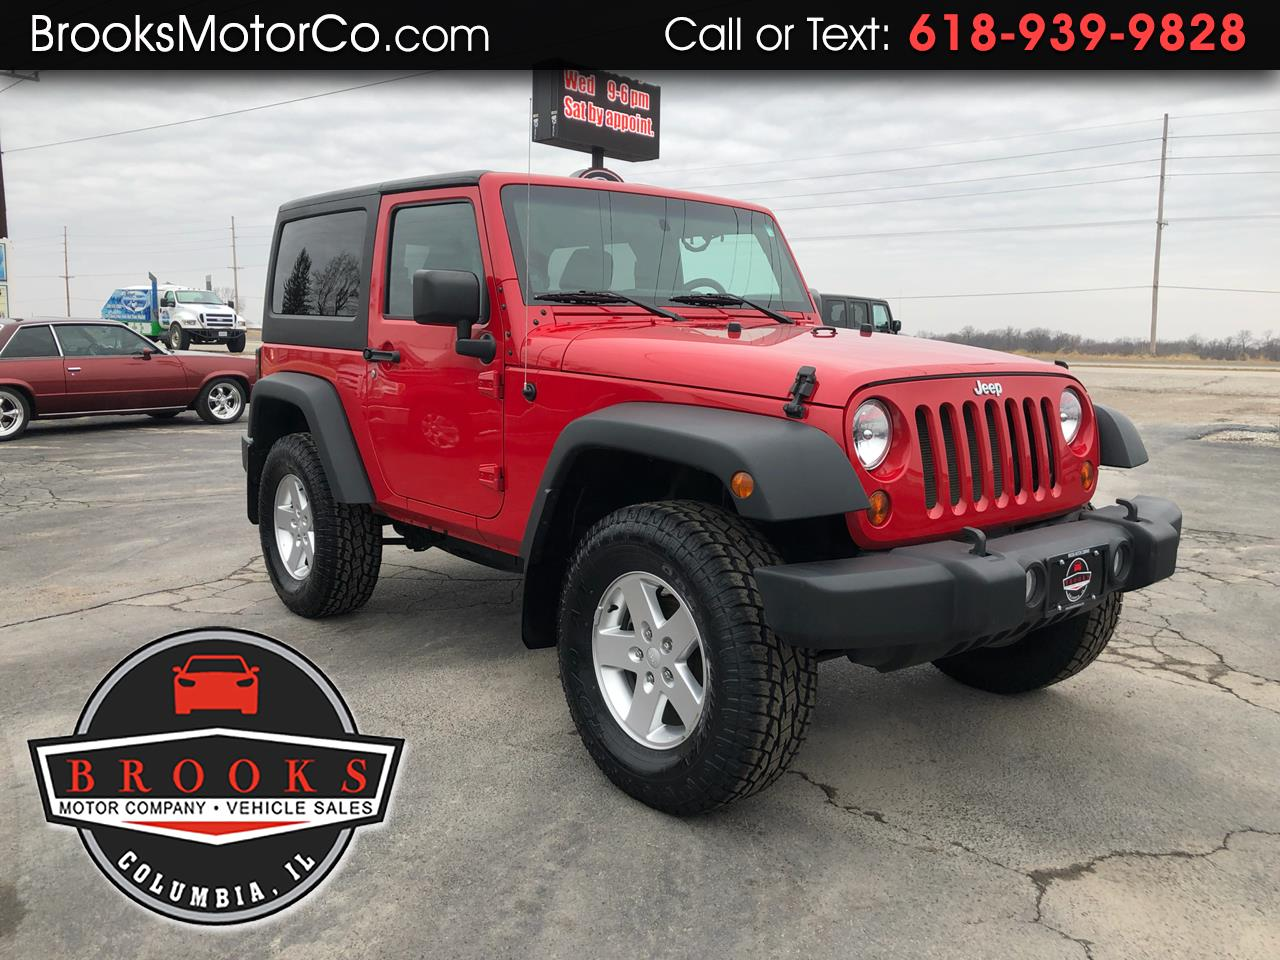 2014 Jeep Wrangler 4WD 2dr Sport